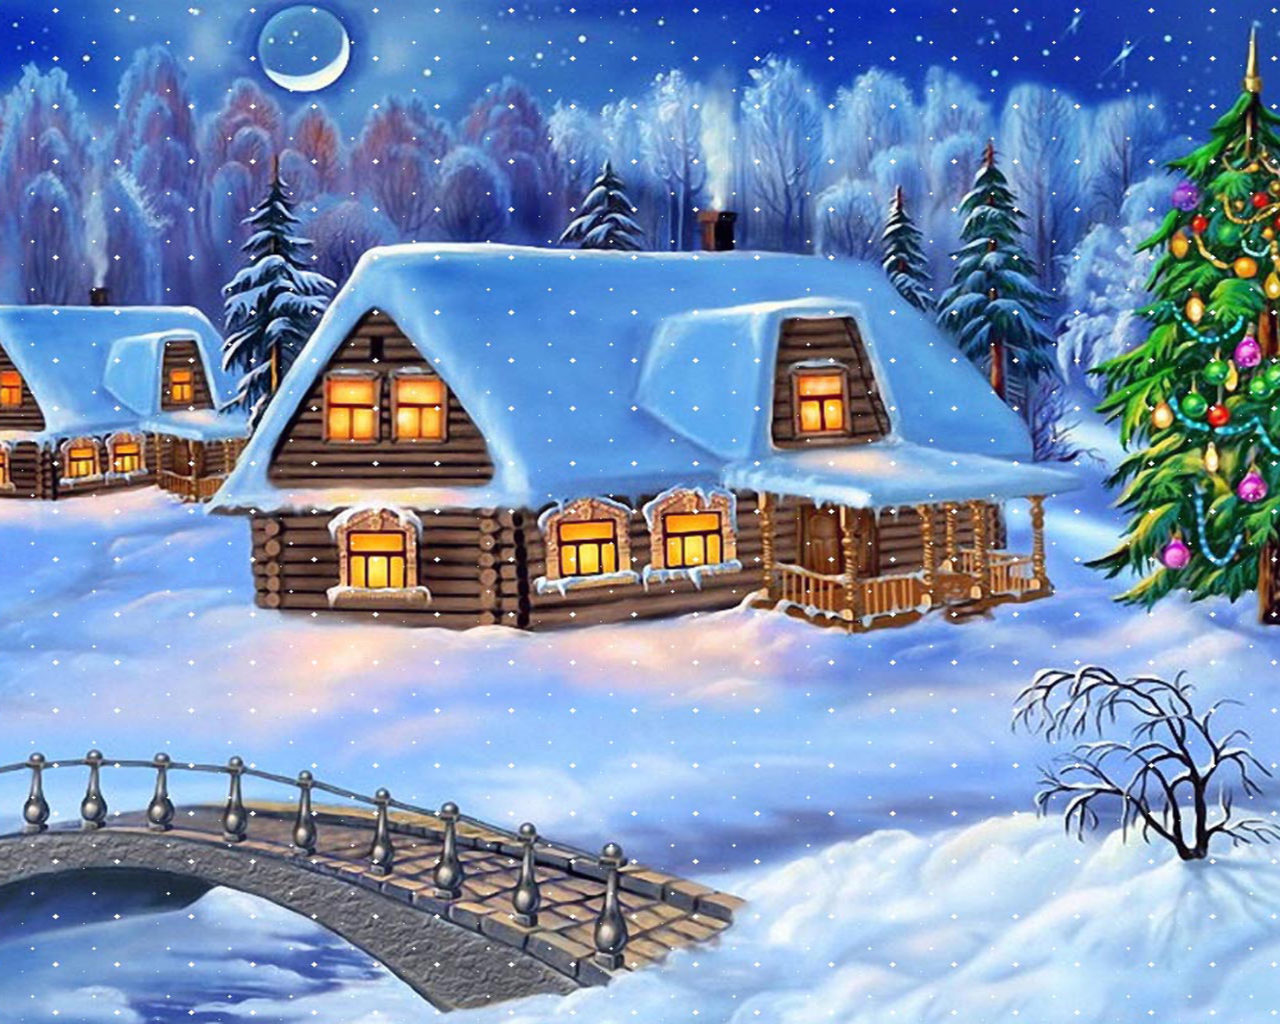 Lord Ganesha Animated Wallpapers Happy New Year Christmas Tree Winter Village Houses Wooden